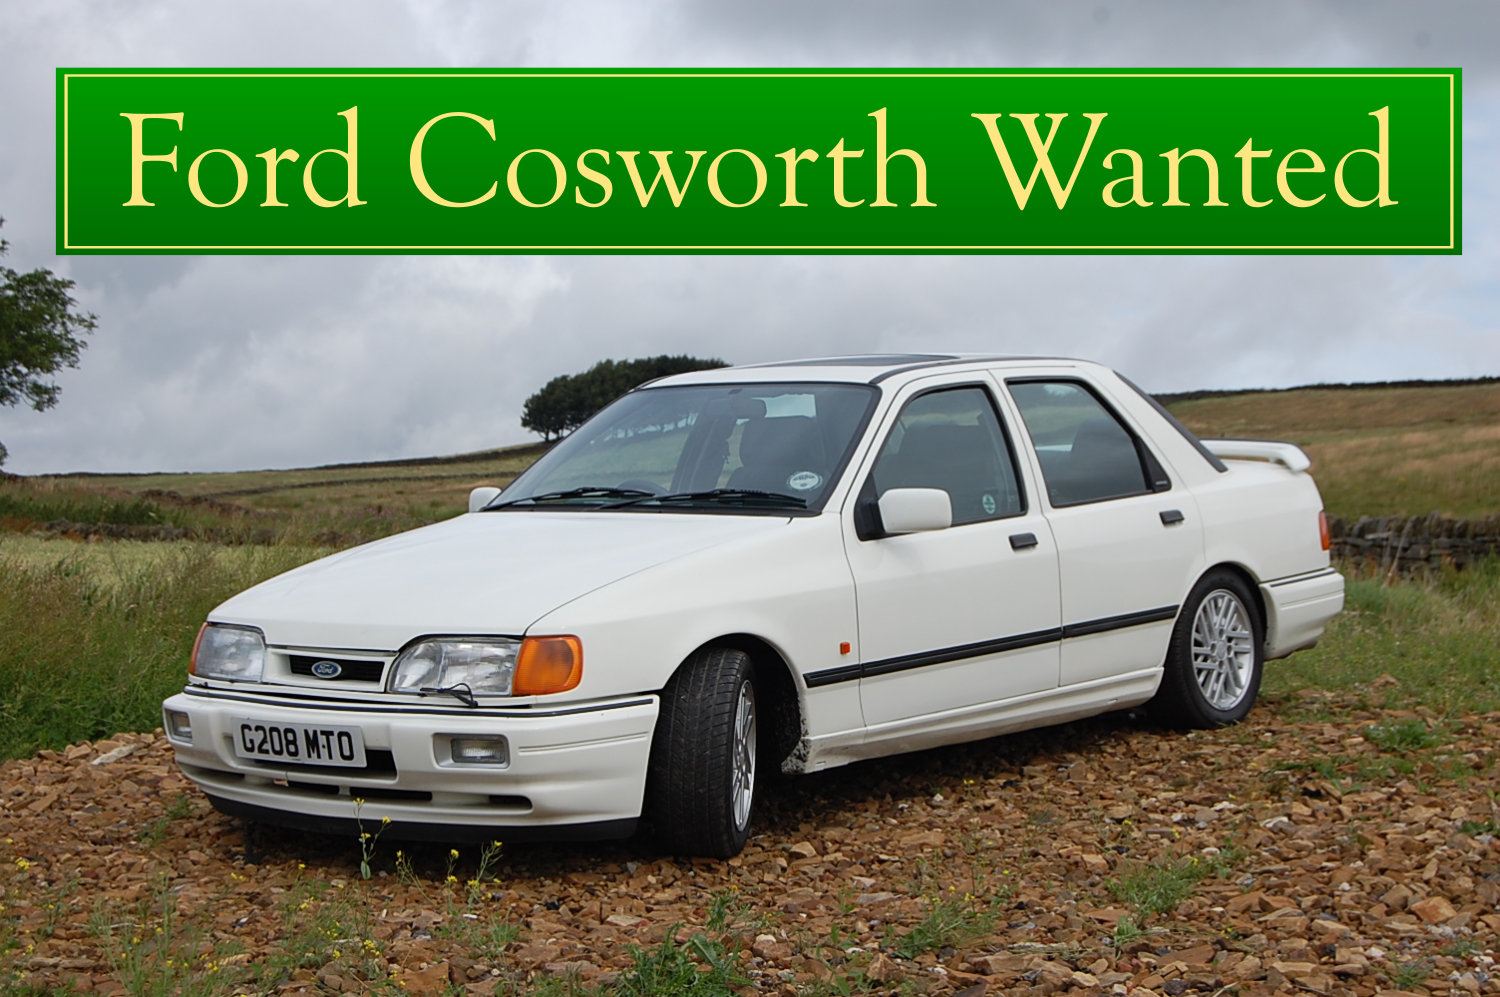 1986  FORD SIERRA XR4i WANTED, CLASSIC CARS WANTED, QUICK PAYMENT Wanted (picture 5 of 6)